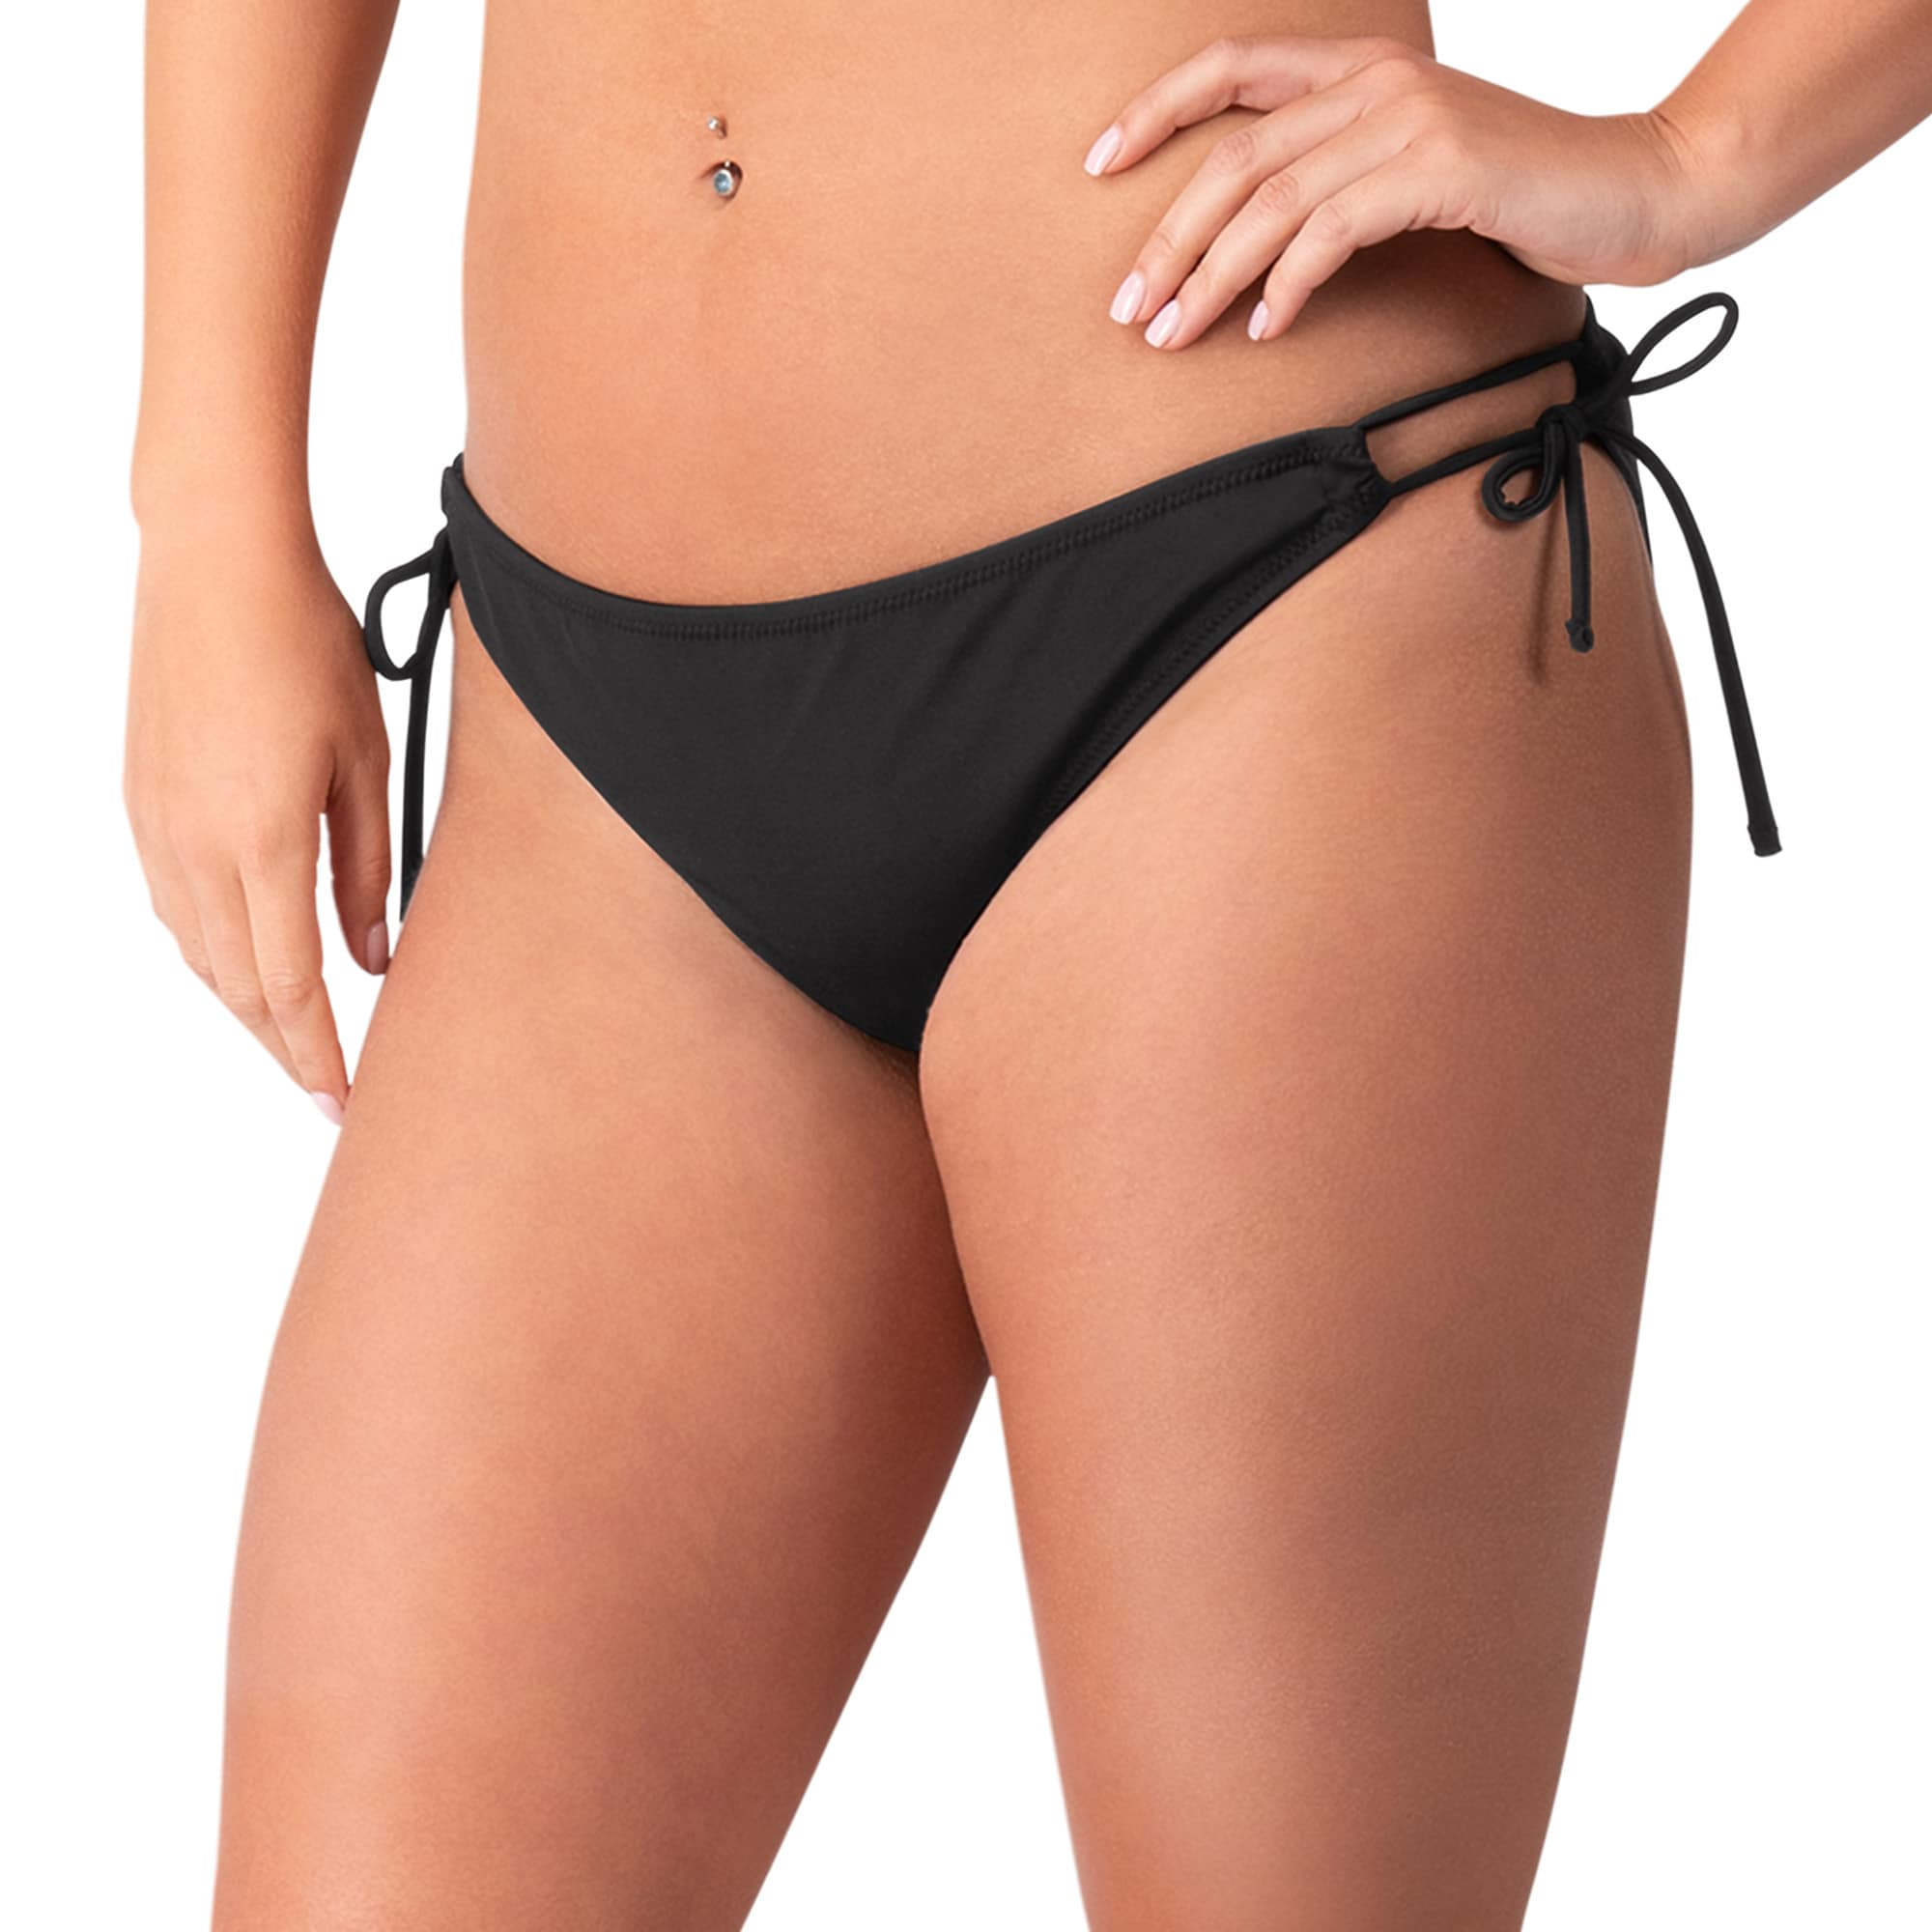 New Orleans Saints G-III 4Her by Carl Banks Women's Without Limits Bikini Bottom - Black